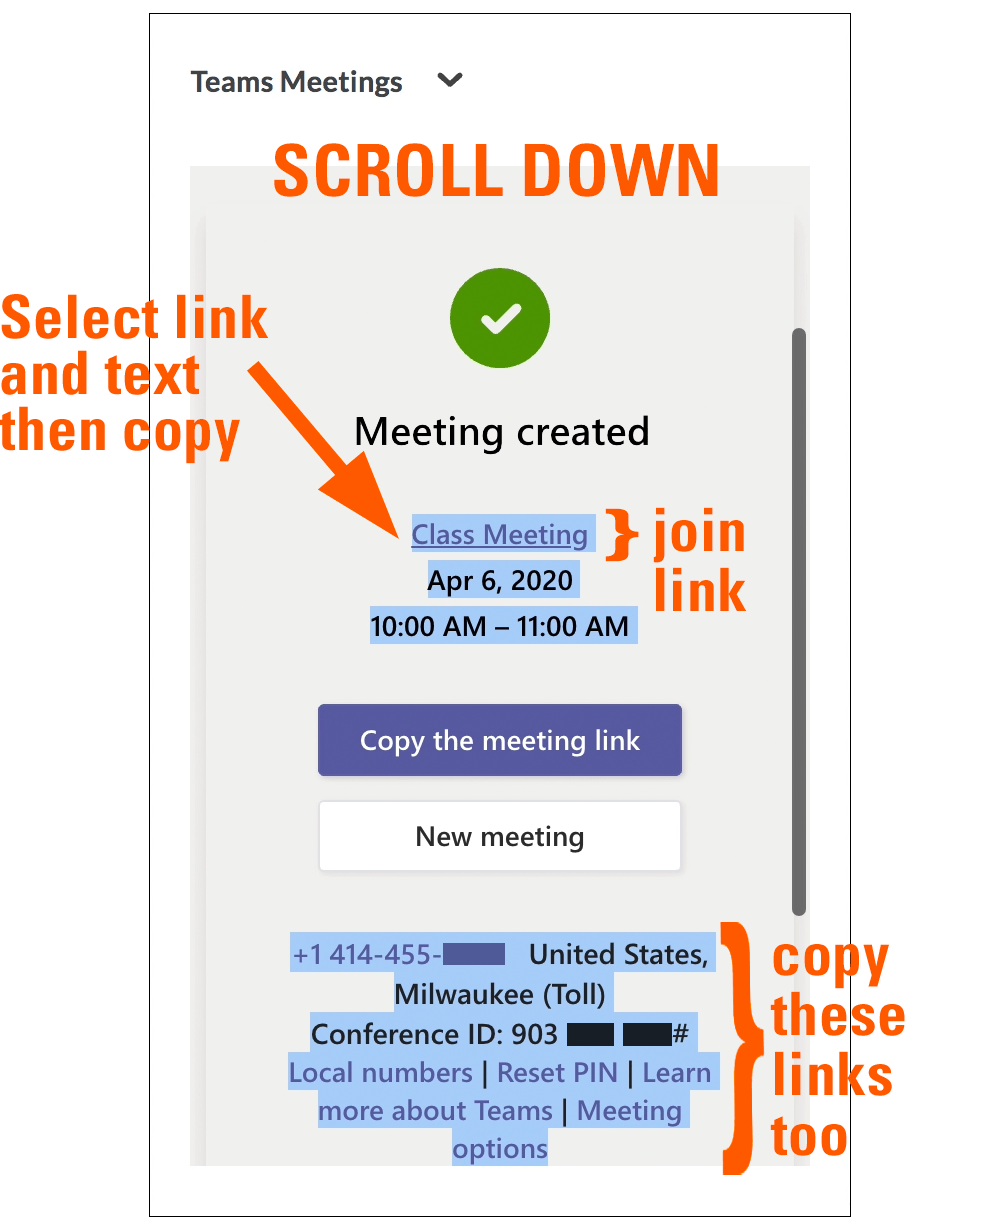 Meeting created, select link and text